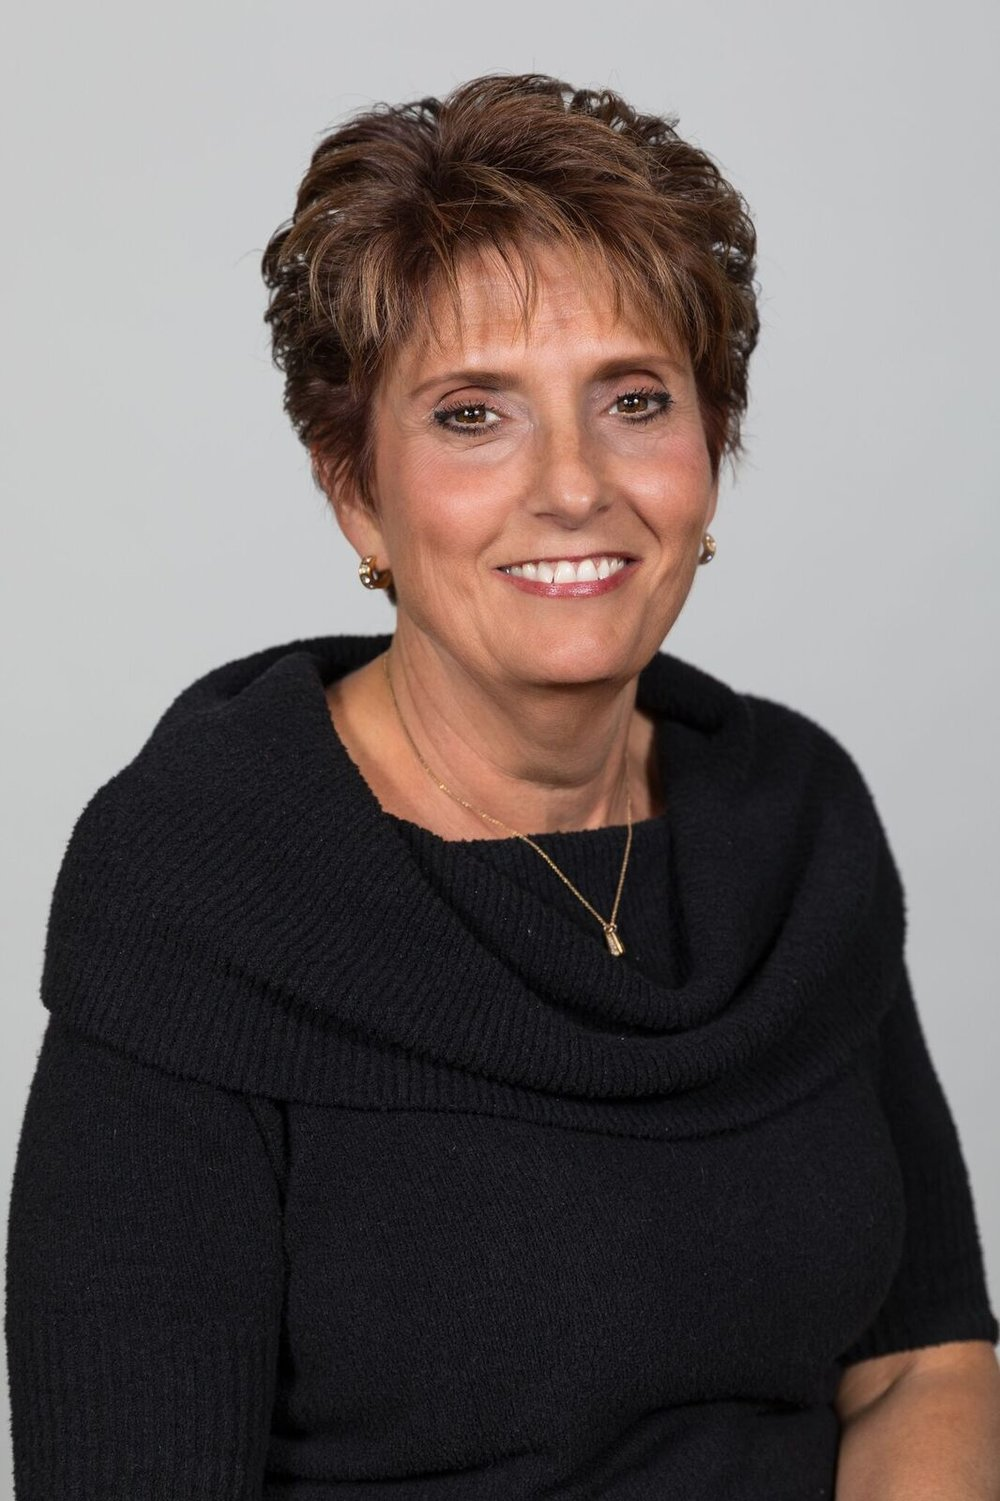 SUE HOUSTON-MARKS   CFO    When did you join Baxter and what brought you here?   I joined Baxter in 2006. I was close friends with Jane and Bob, they asked me to come work for them part-time on a consulting basis.    How do you see the company changing over the next 5 - 10 years?     I see the company bidding and securing larger commercial/residential projects.    Favorite building in the Hudson Valley?   The Washington Street medical building. One of ours, of course!    What is your background prior to Baxter?   I provided, on a subcontract basis, accounting and financial services to various different small businesses and not-for-profit organizations.    What have       you learned about construction and real estate as a result of your work at Baxter?   That nothing ever stays the same.